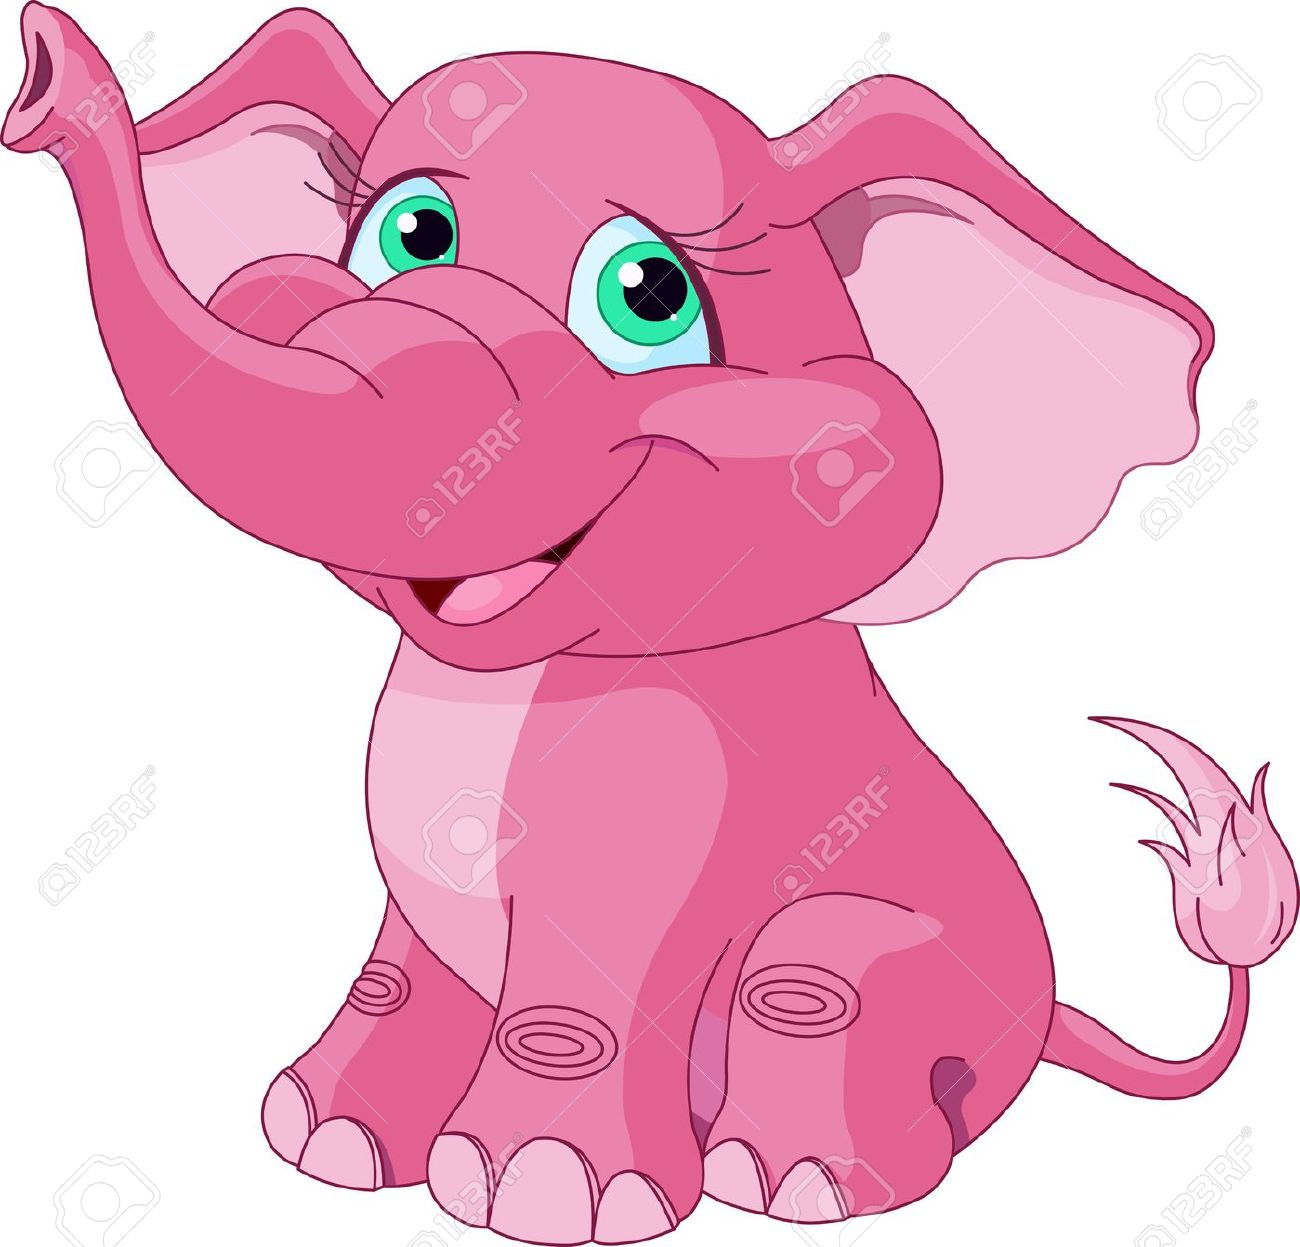 Very Cute Pink Elephant Royalty Free Cliparts, Vectors, And Stock.